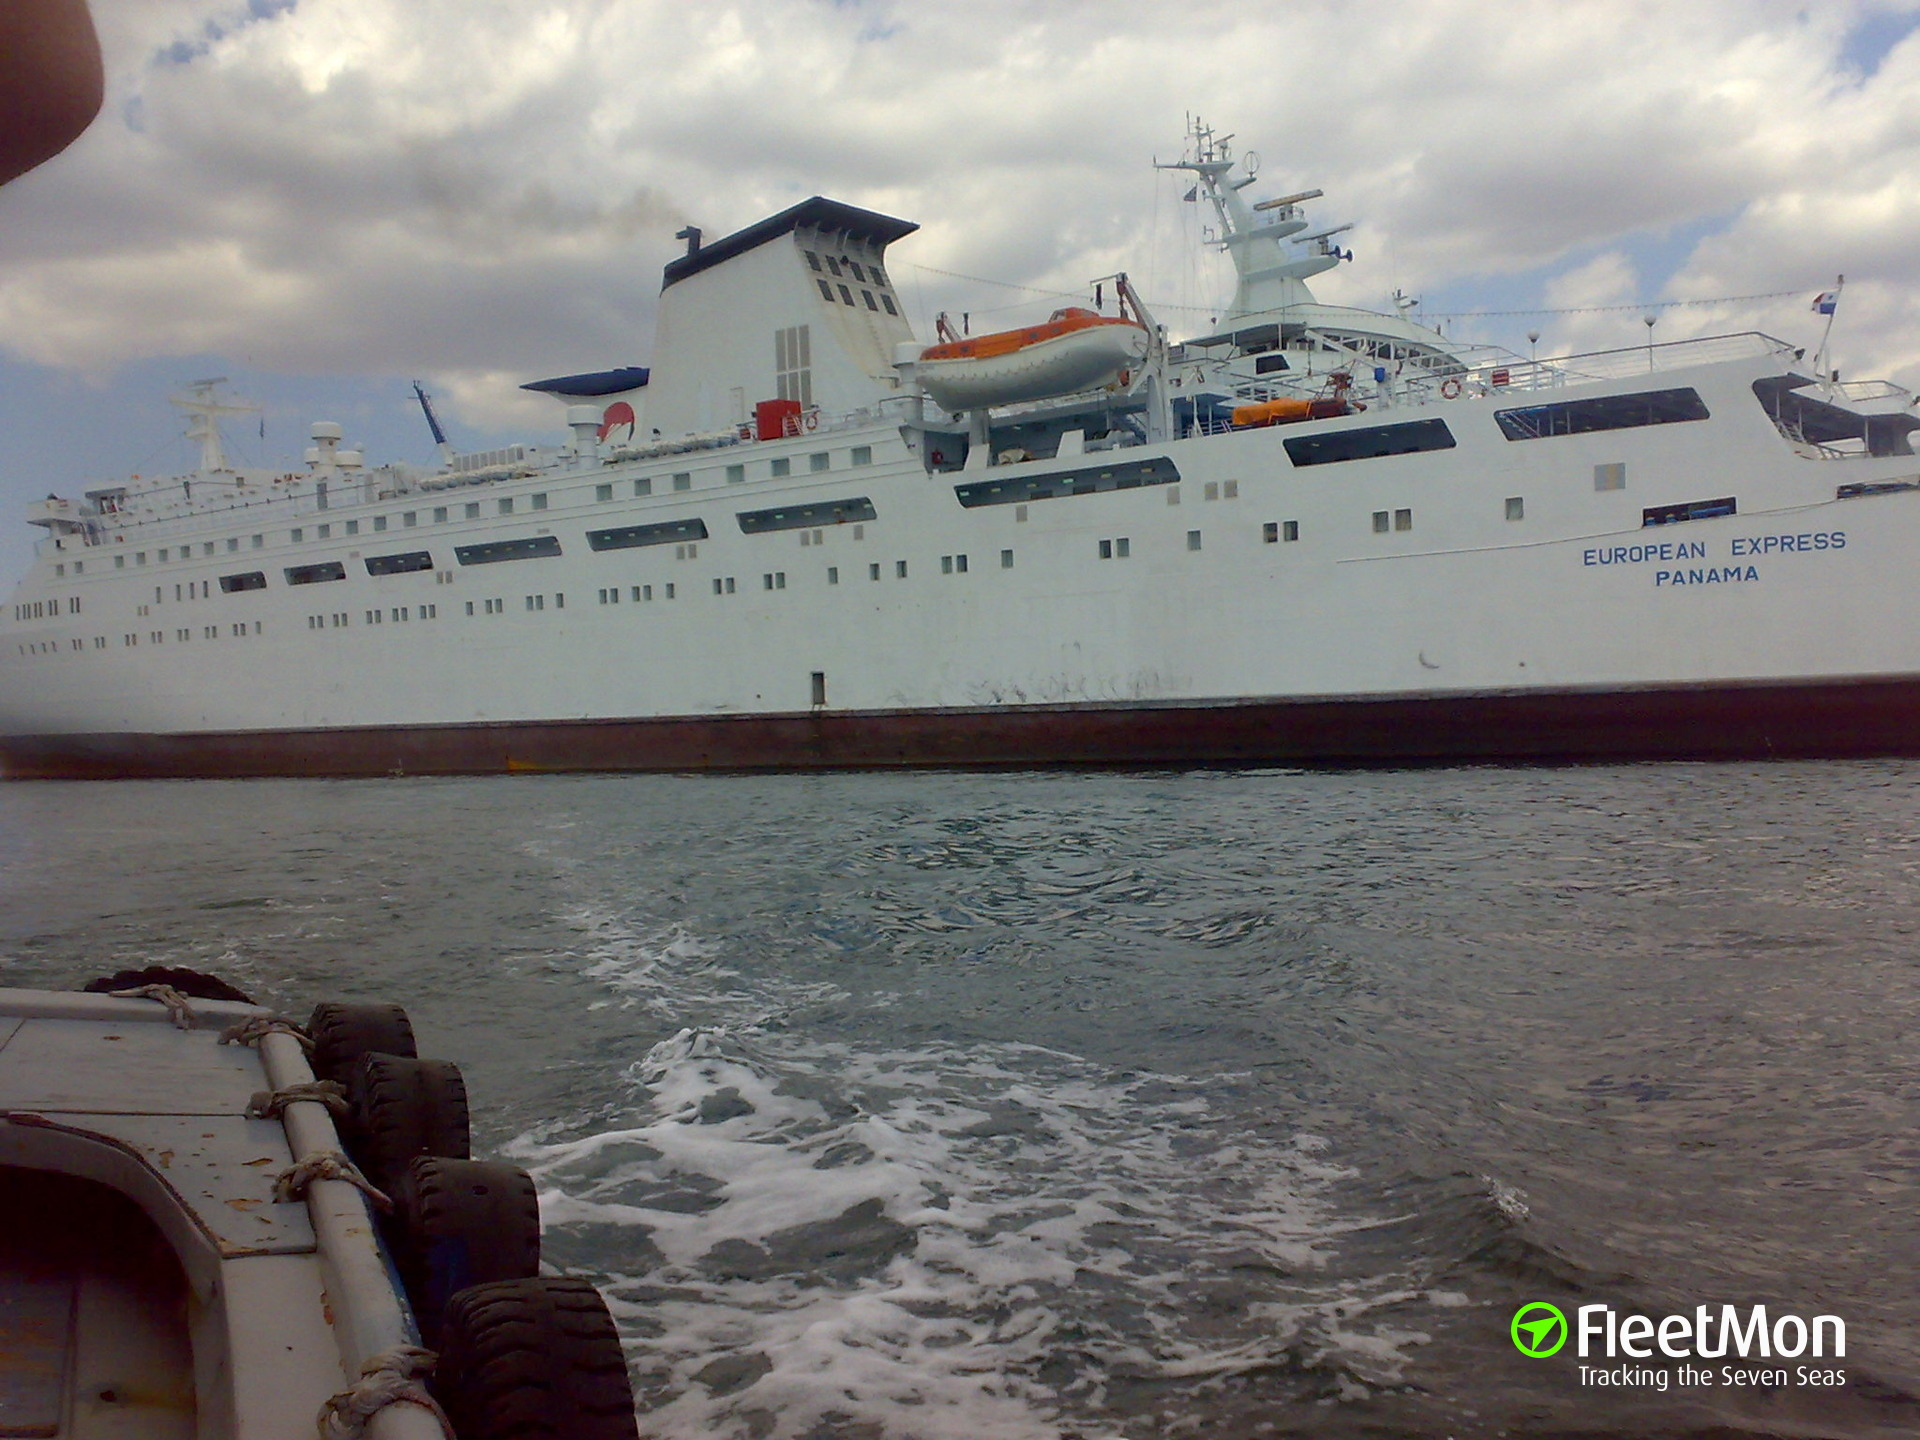 Ferry EUROPEAN EXPRESS hit two nearby ships inflicting damages, Perama